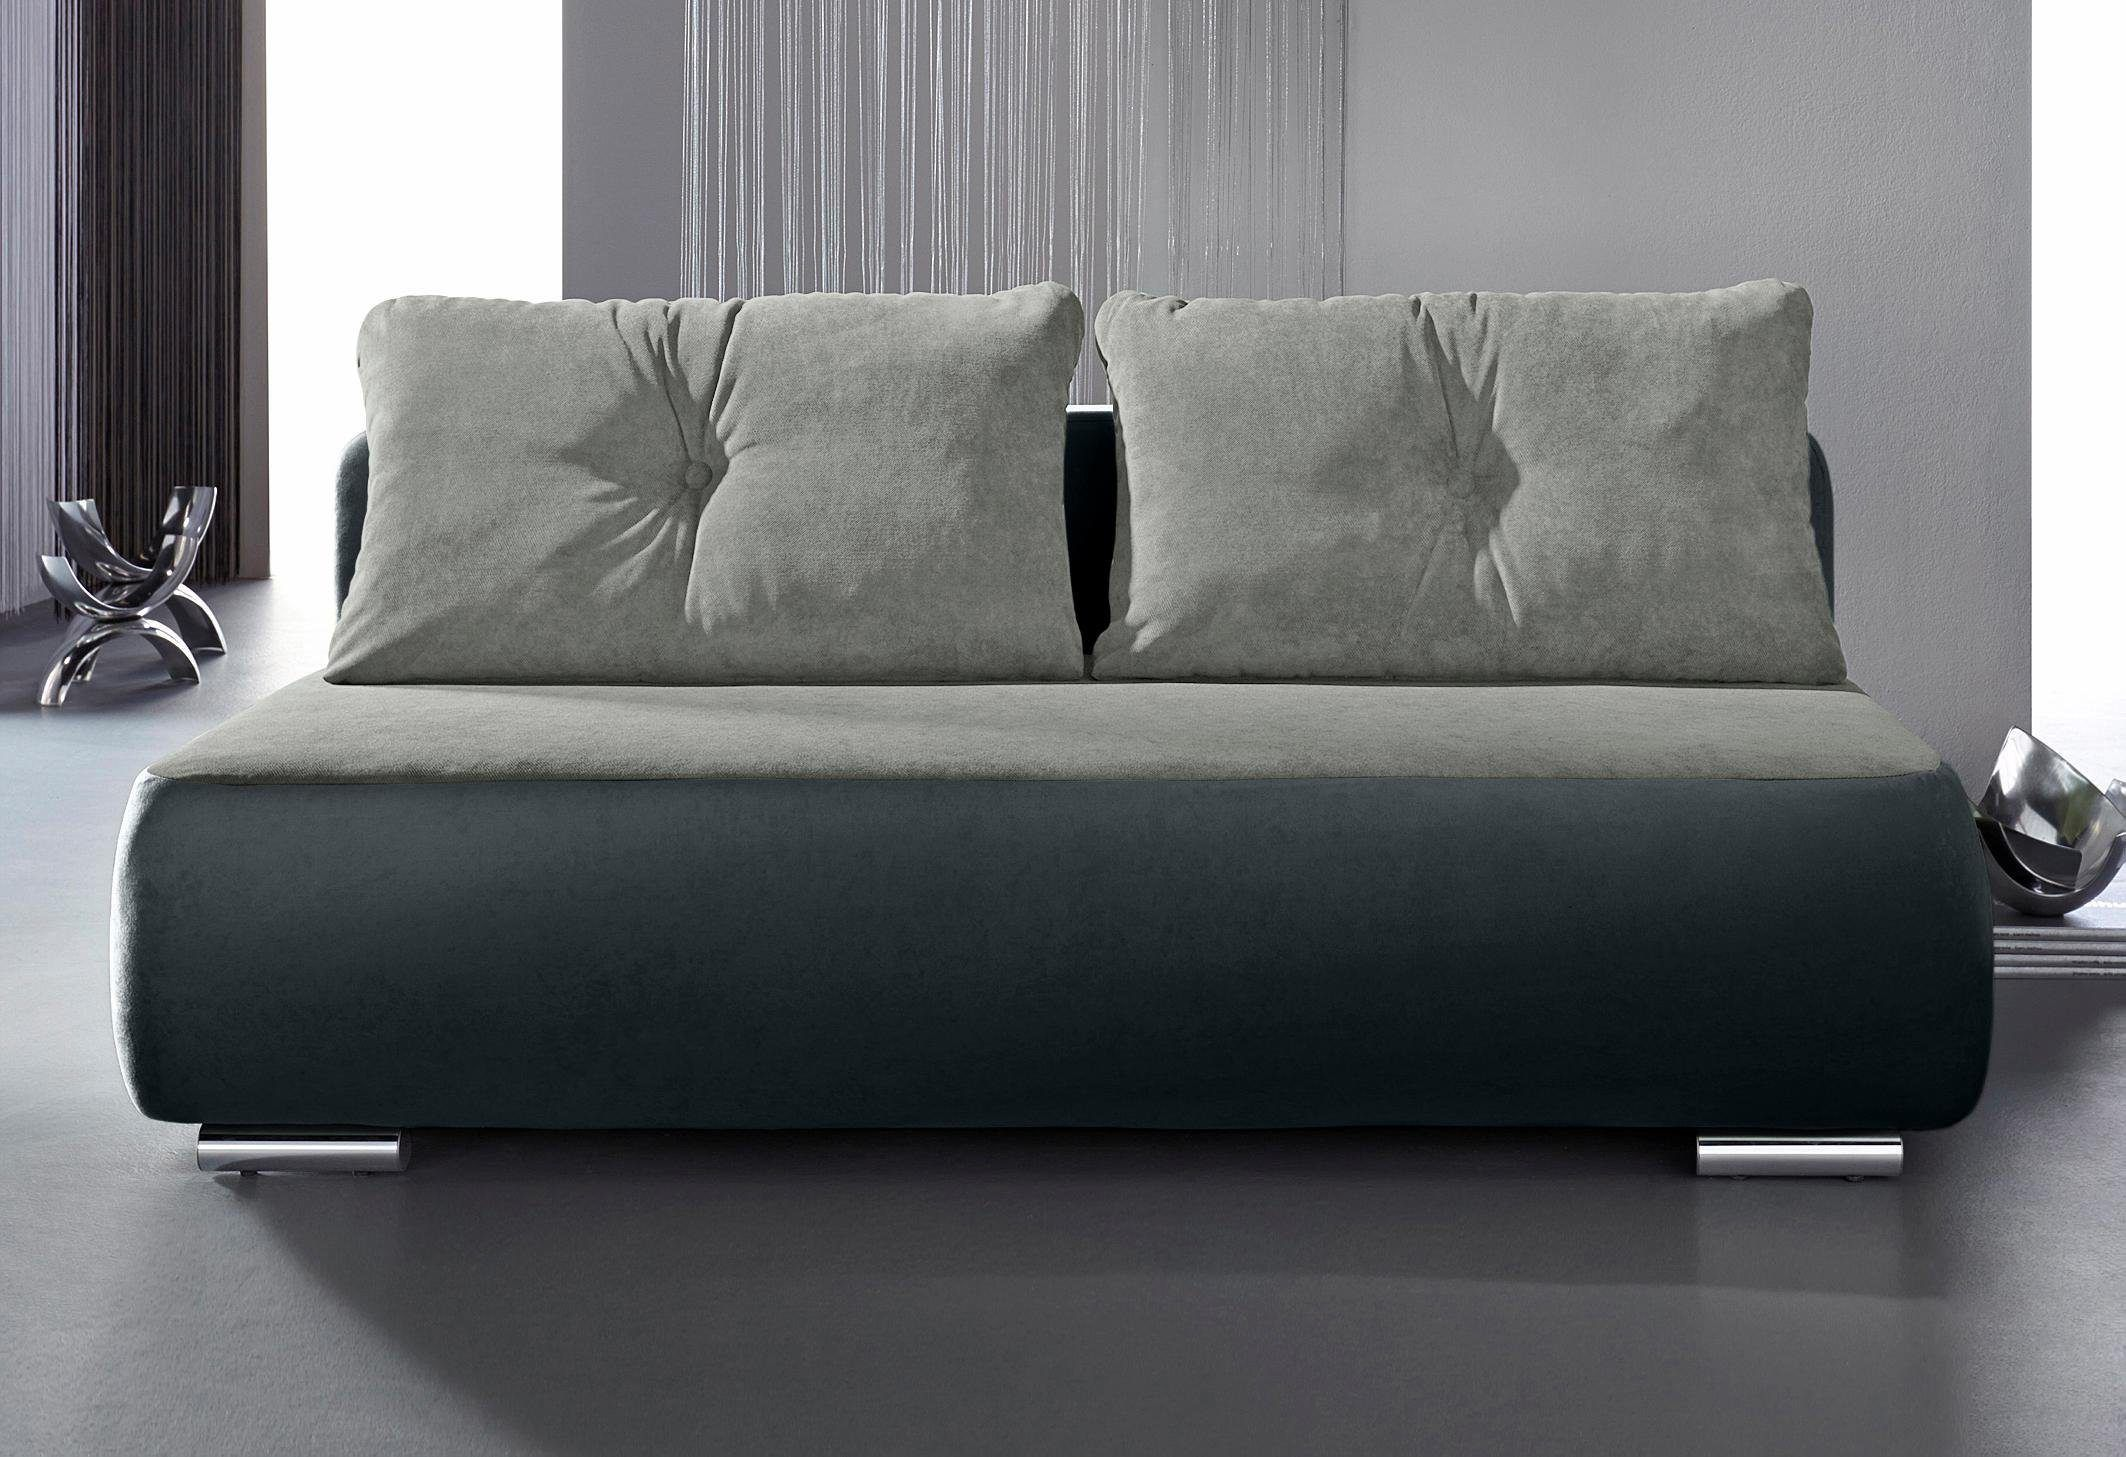 Schlafsofa Online Kaufen Inosign Schlafsofa Interior Design Furniture Furniture